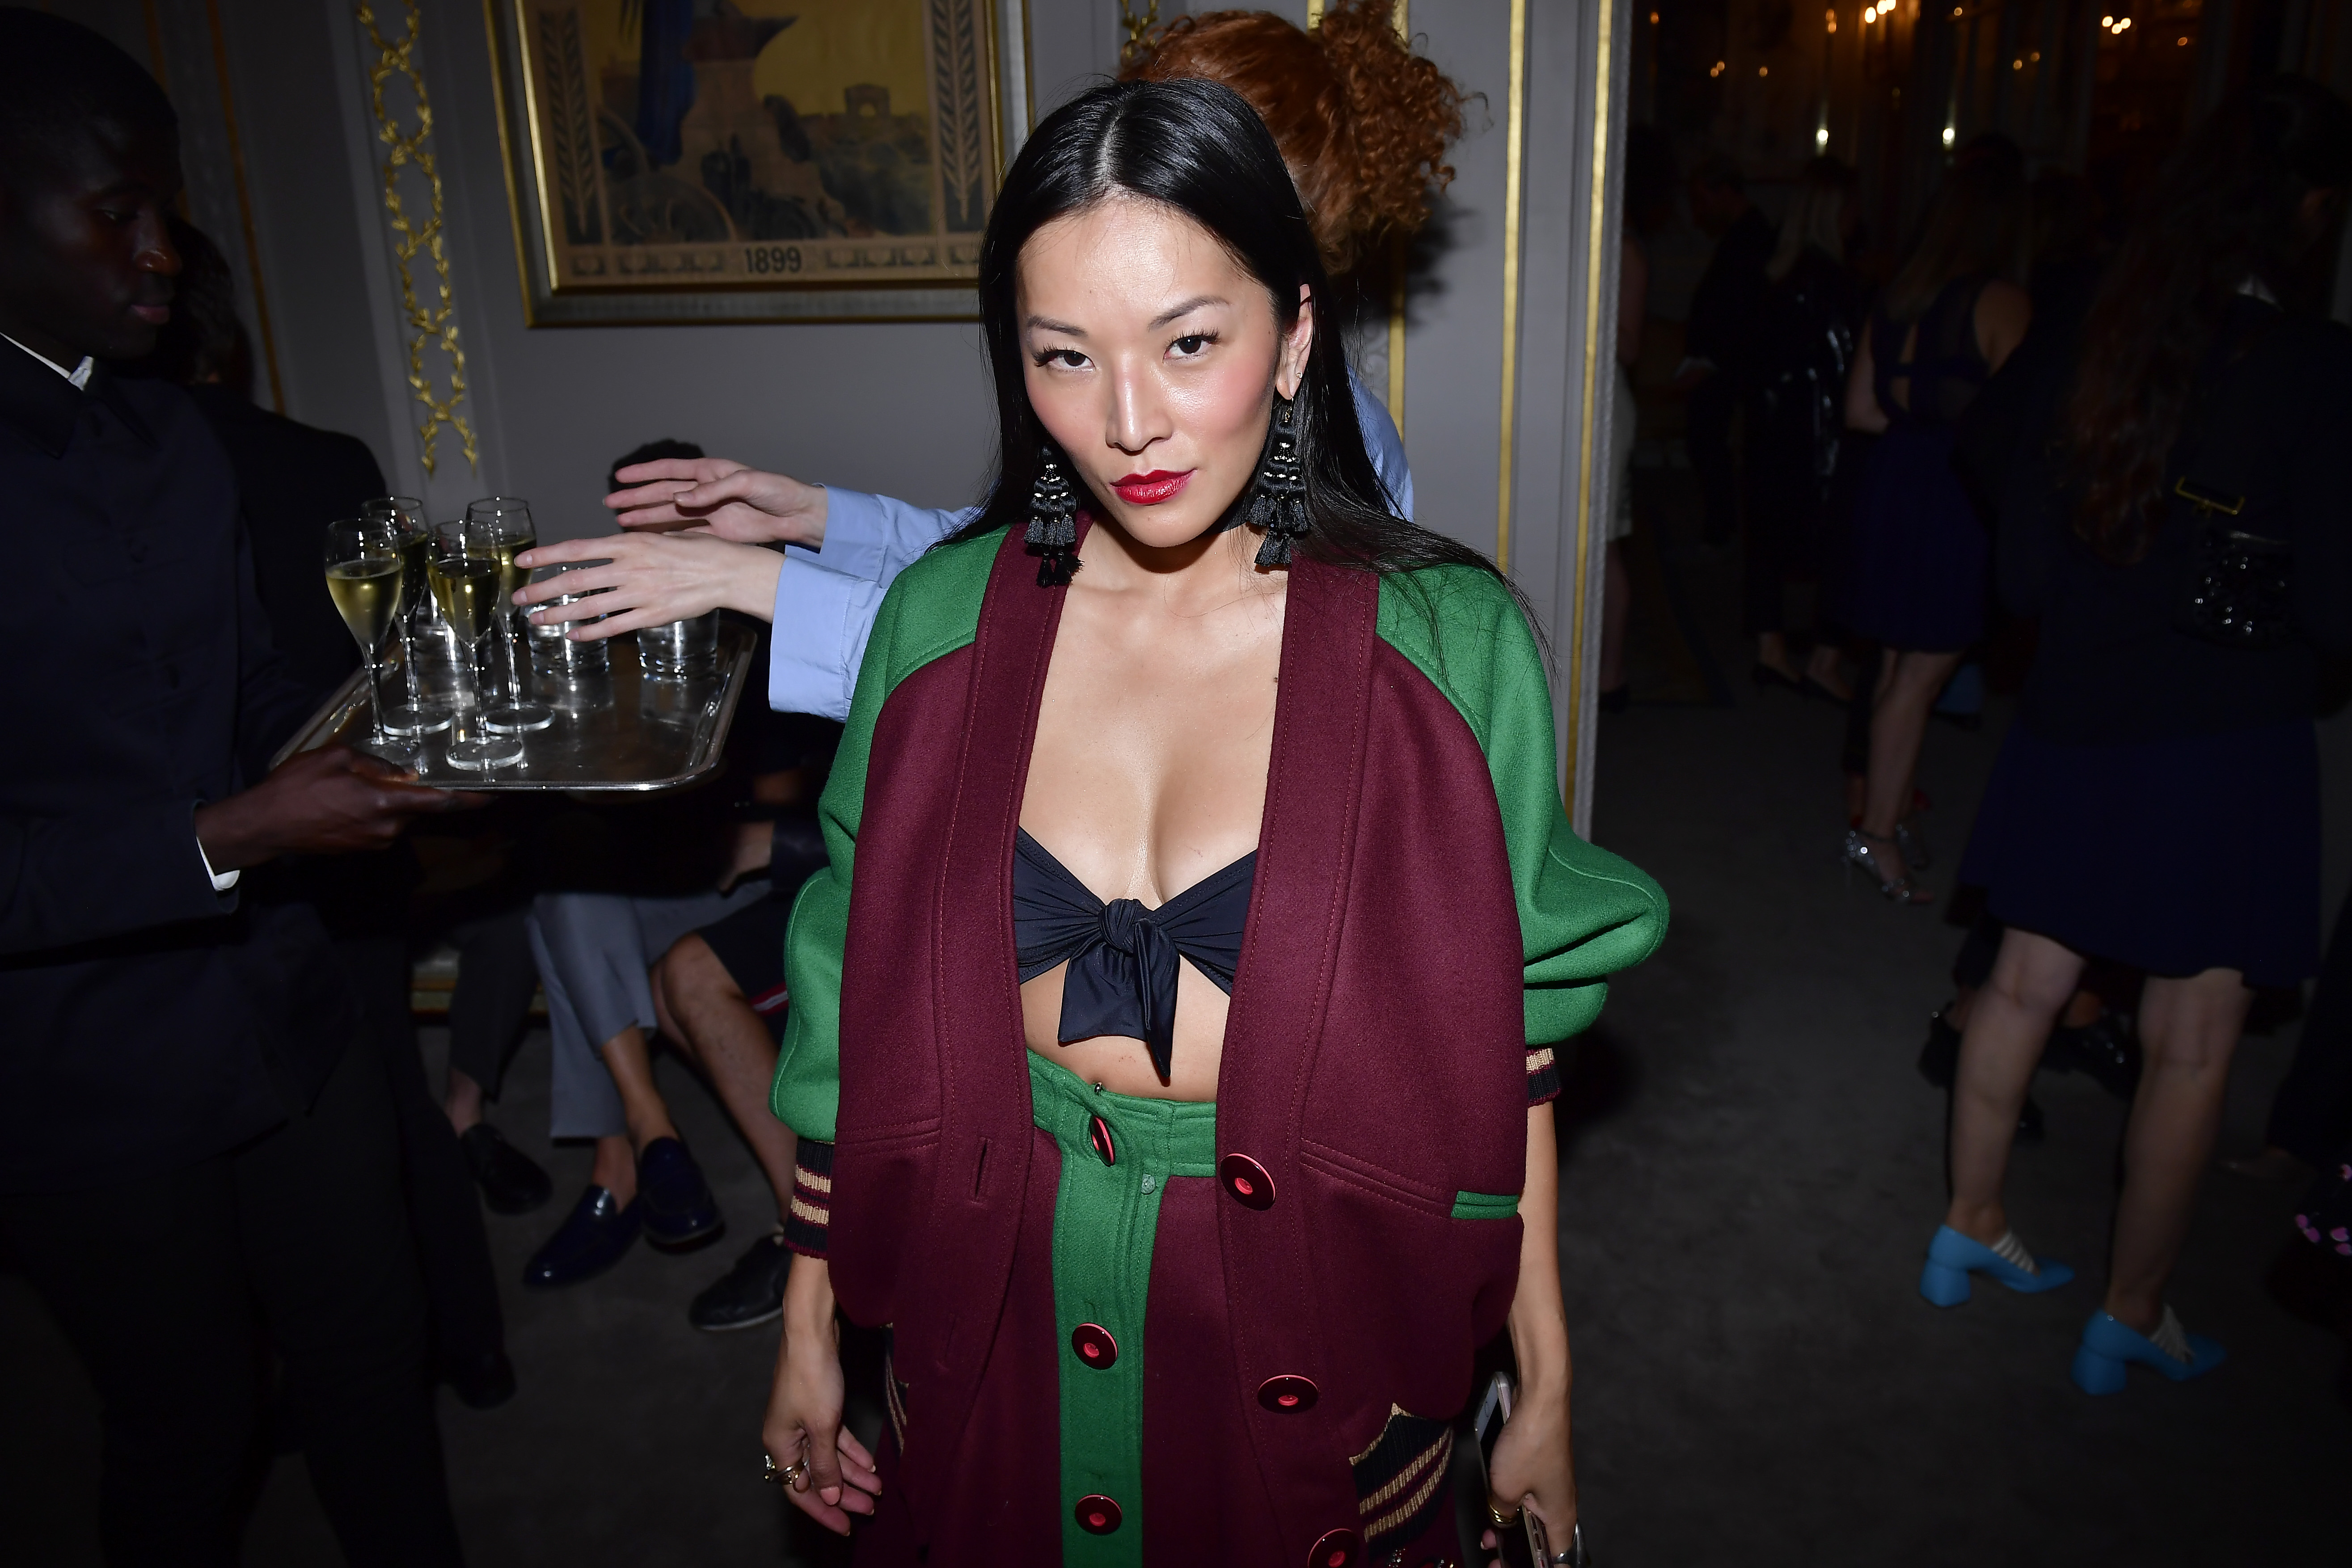 PARIS, FRANCE - JULY 02:  Tina Leung attends Miu Miu Cruise Collection cocktail & party as part of Haute Couture Paris Fashion Week on July 2, 2017 in Paris, France.  (Photo by Victor Boyko/Getty Images for Miu Miu) *** Local Caption *** Tina Leung